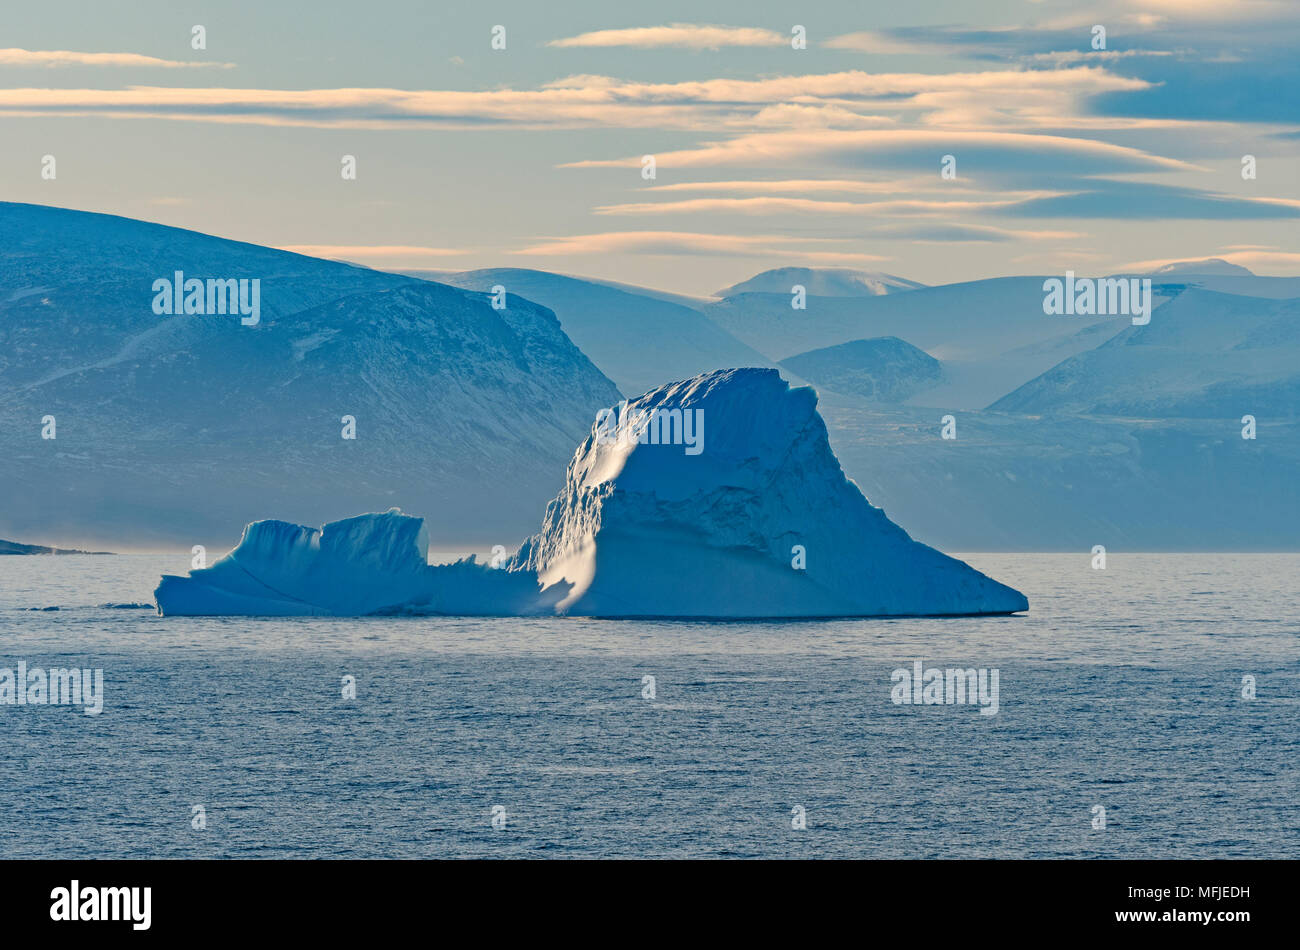 Ice, Fog, and Mountains in the High Arctic of  Isabella Bay of the  Ninginganiq National Wildlife Area on Baffin Island in Nunavut, Canada - Stock Image